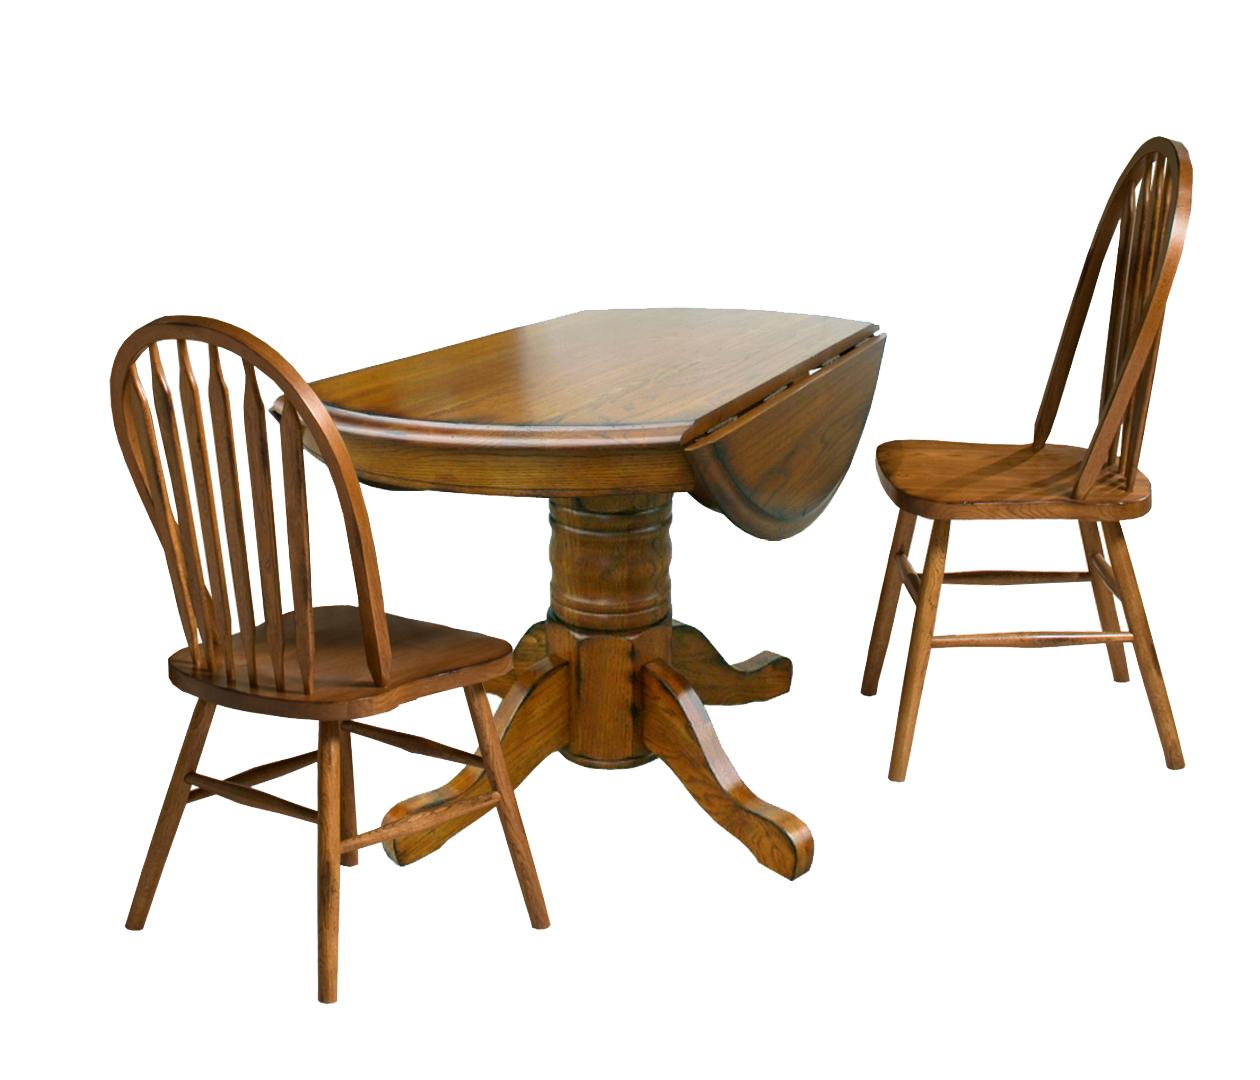 Three Piece Drop Leaf Table and Chair Dining Set by  : products2Fintercon2Fcolor2Fclassic20oak20coco ta 42d bru bse2Btop2B2x253sh b from www.wolffurniture.com size 1260 x 1080 jpeg 87kB